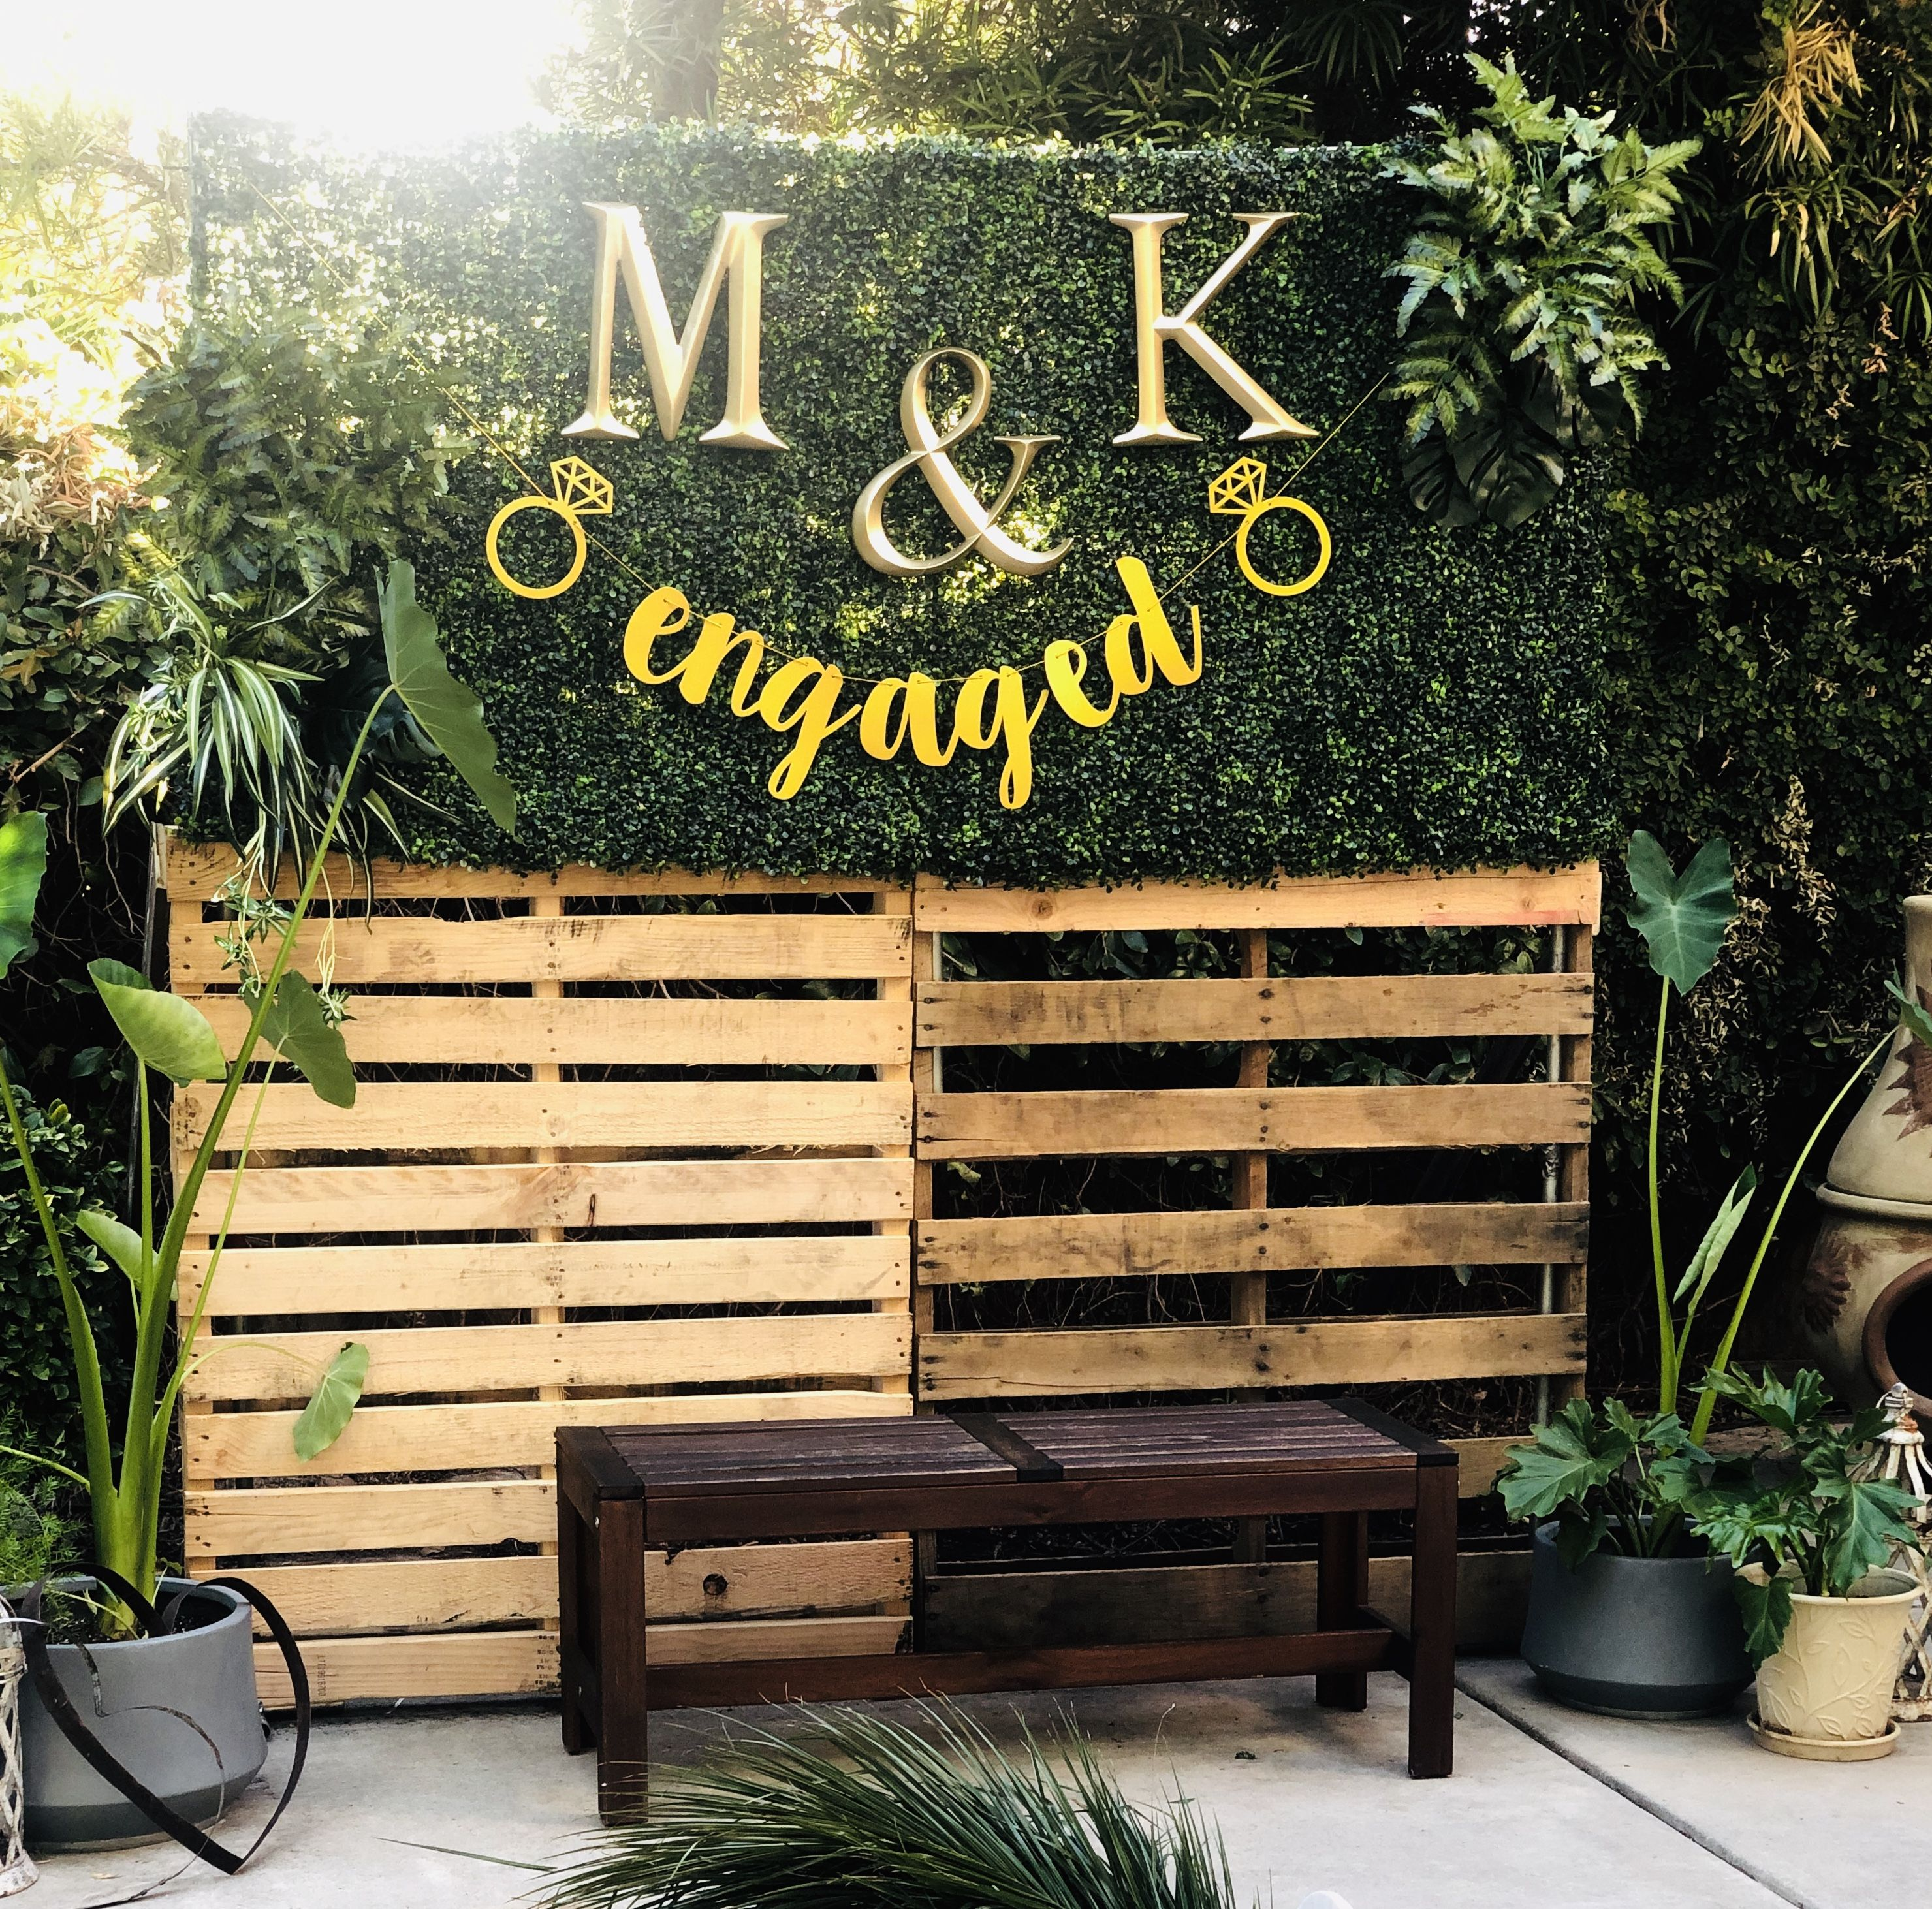 Pallet Backdrop Outdoor Engagement Party Engagement Party Backdrop Engagement Party Banners